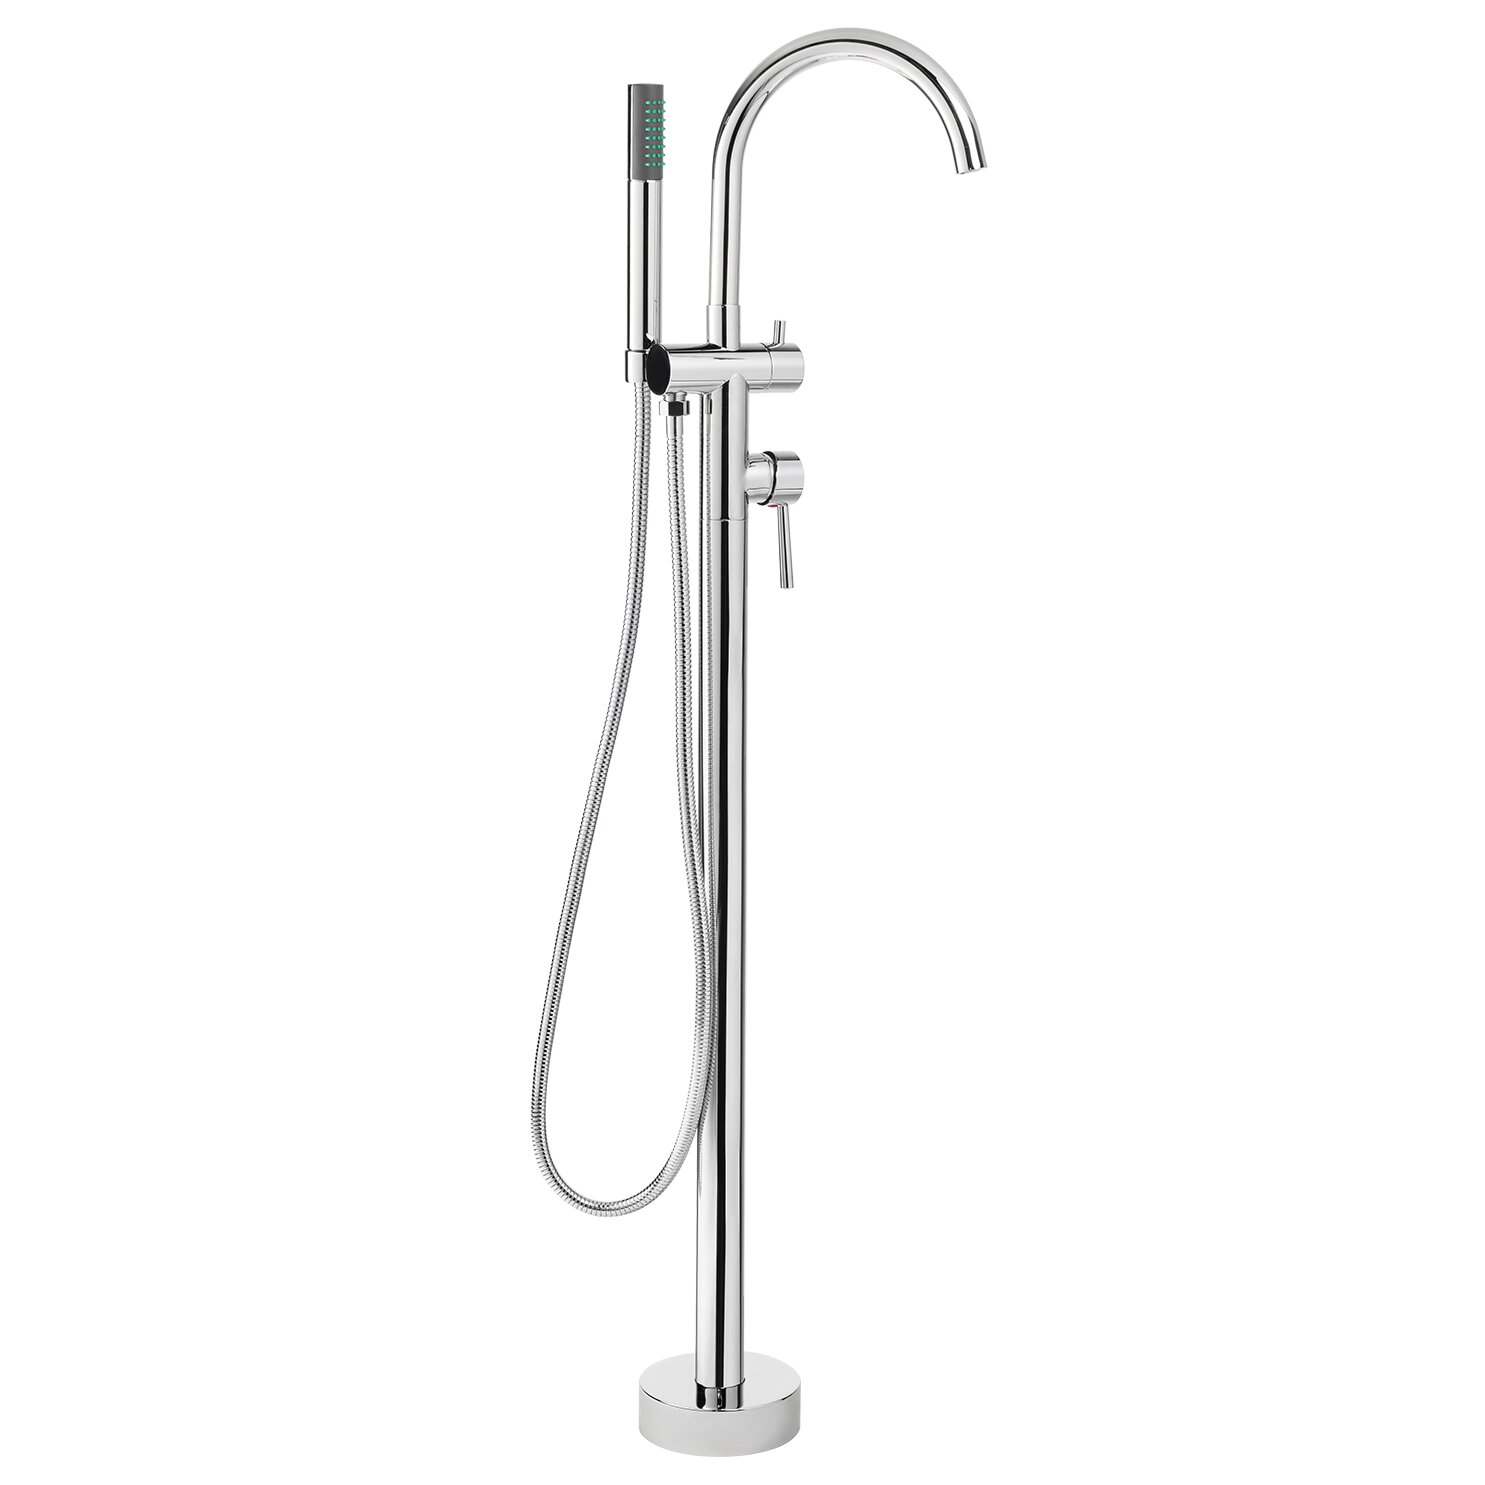 AKDY Diverter Tub and Shower Faucet with Single Handle